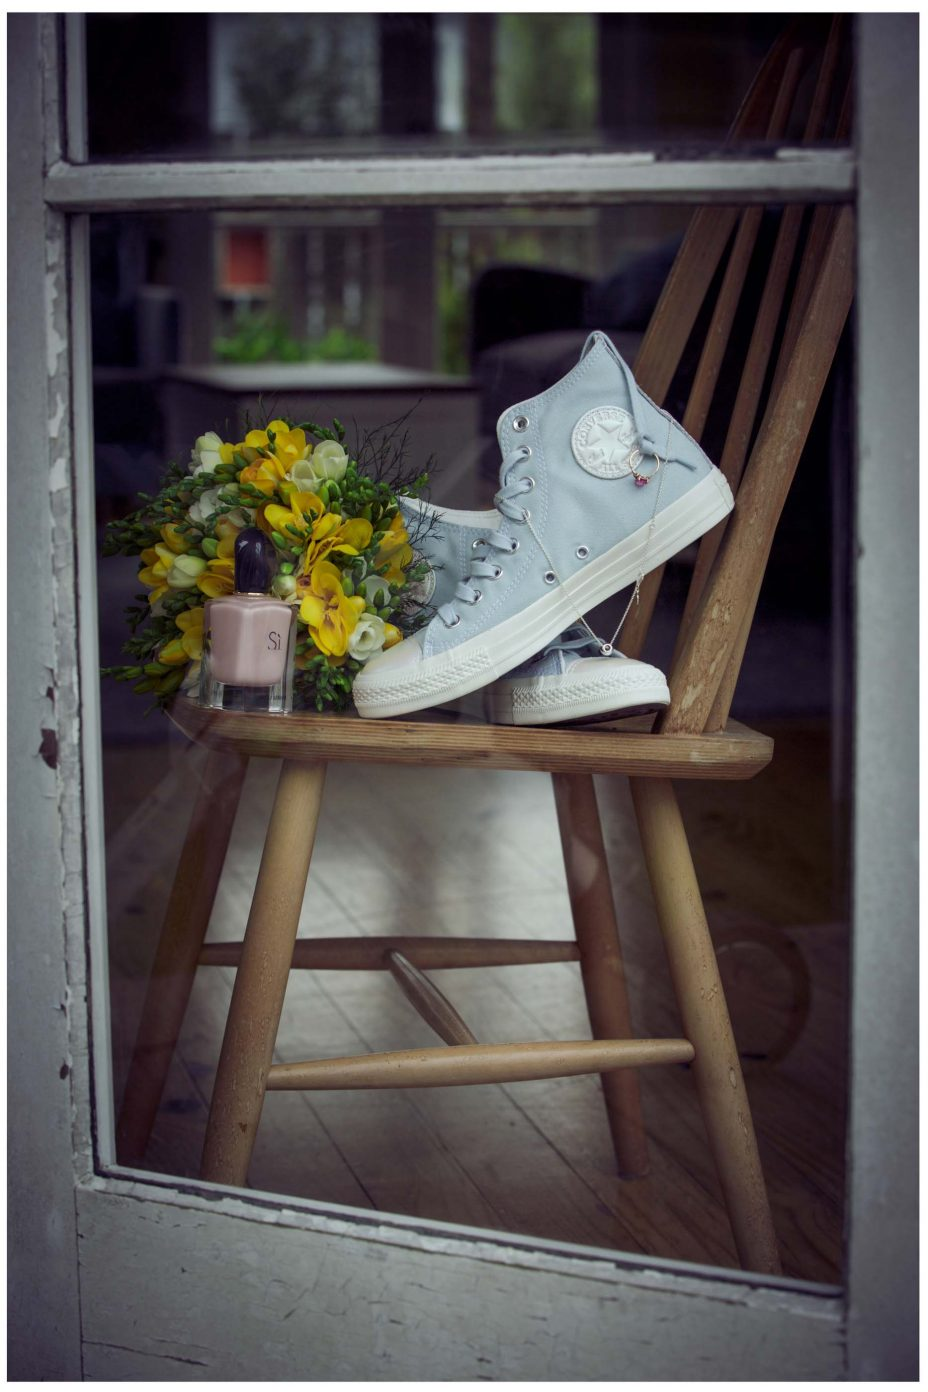 Converse High top baby blue wedding shoes